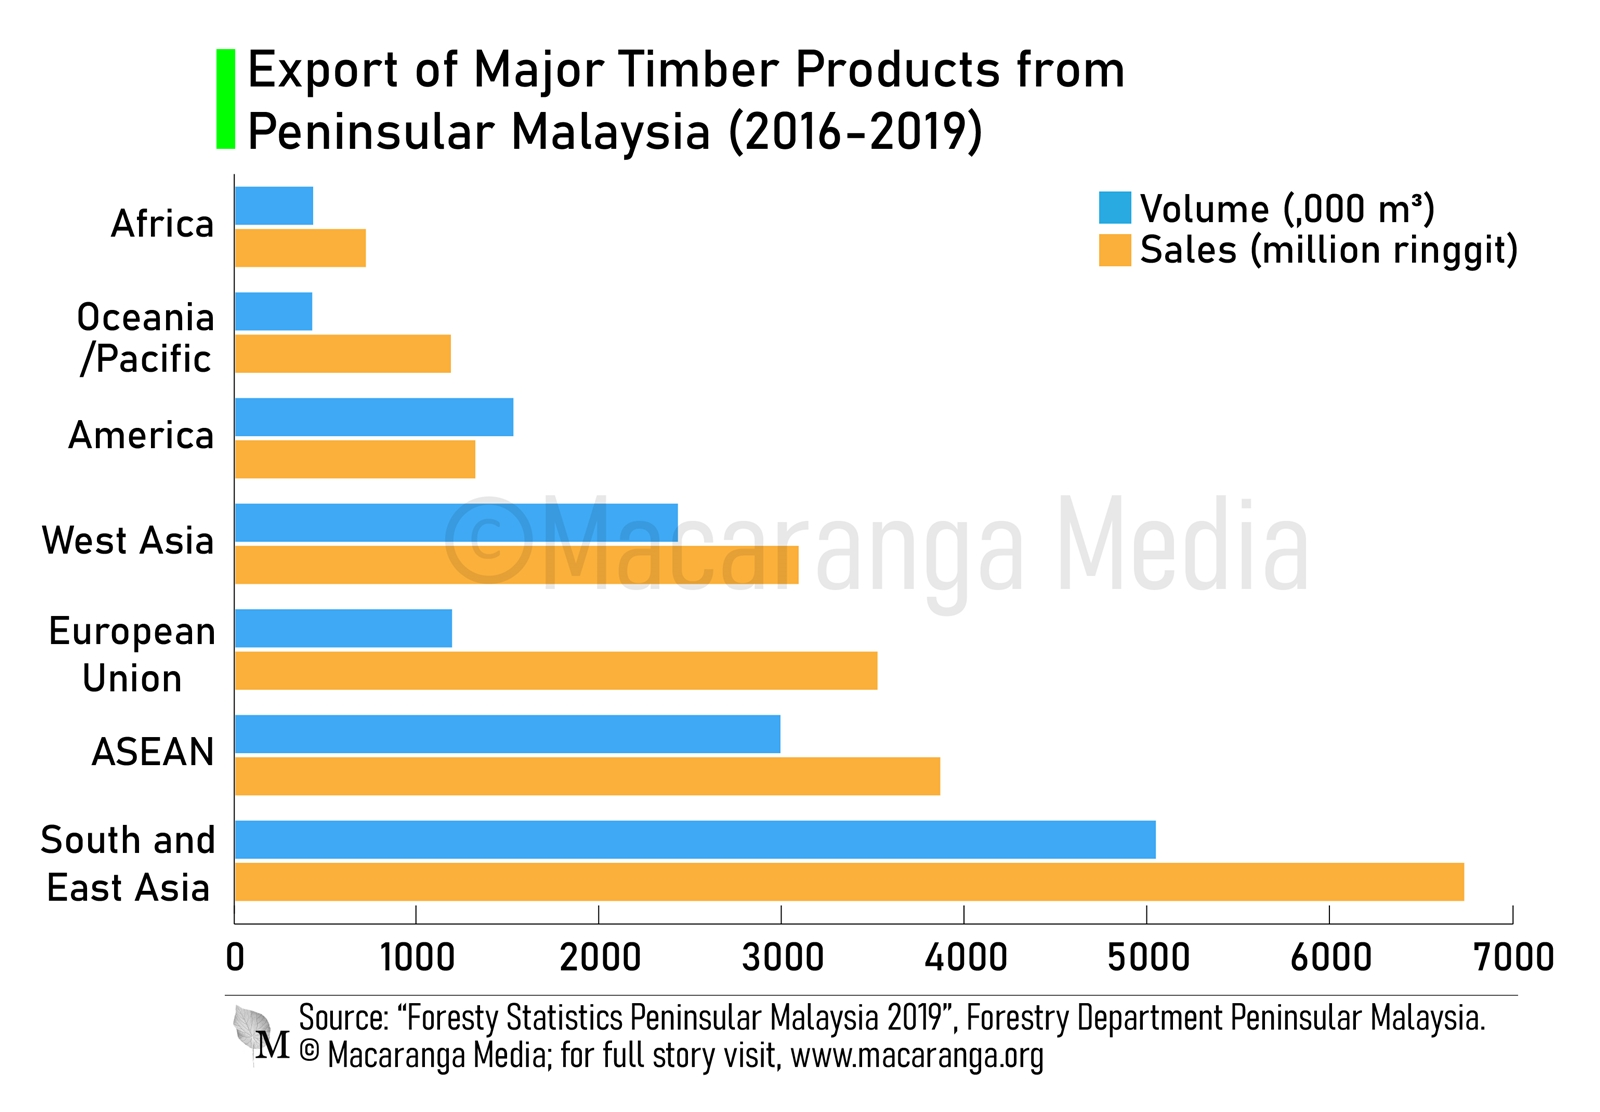 Timber Export values from Peninsular Malaysia for the years 2016-2019